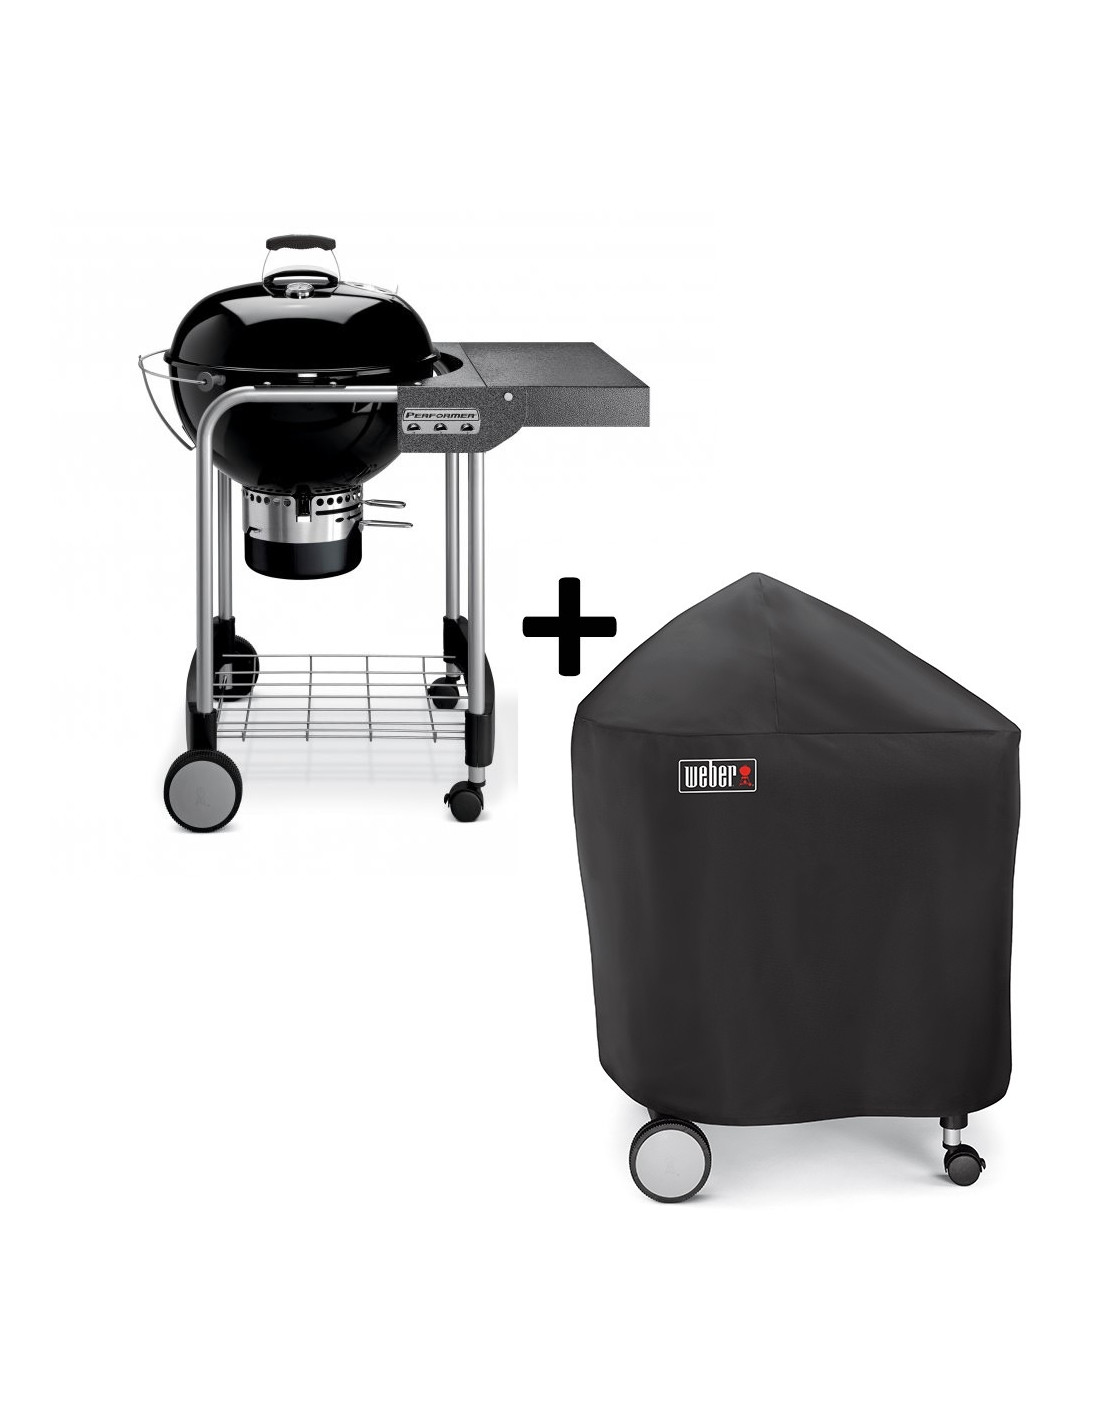 barbecue weber charbon performer original 57cm gbs housse. Black Bedroom Furniture Sets. Home Design Ideas